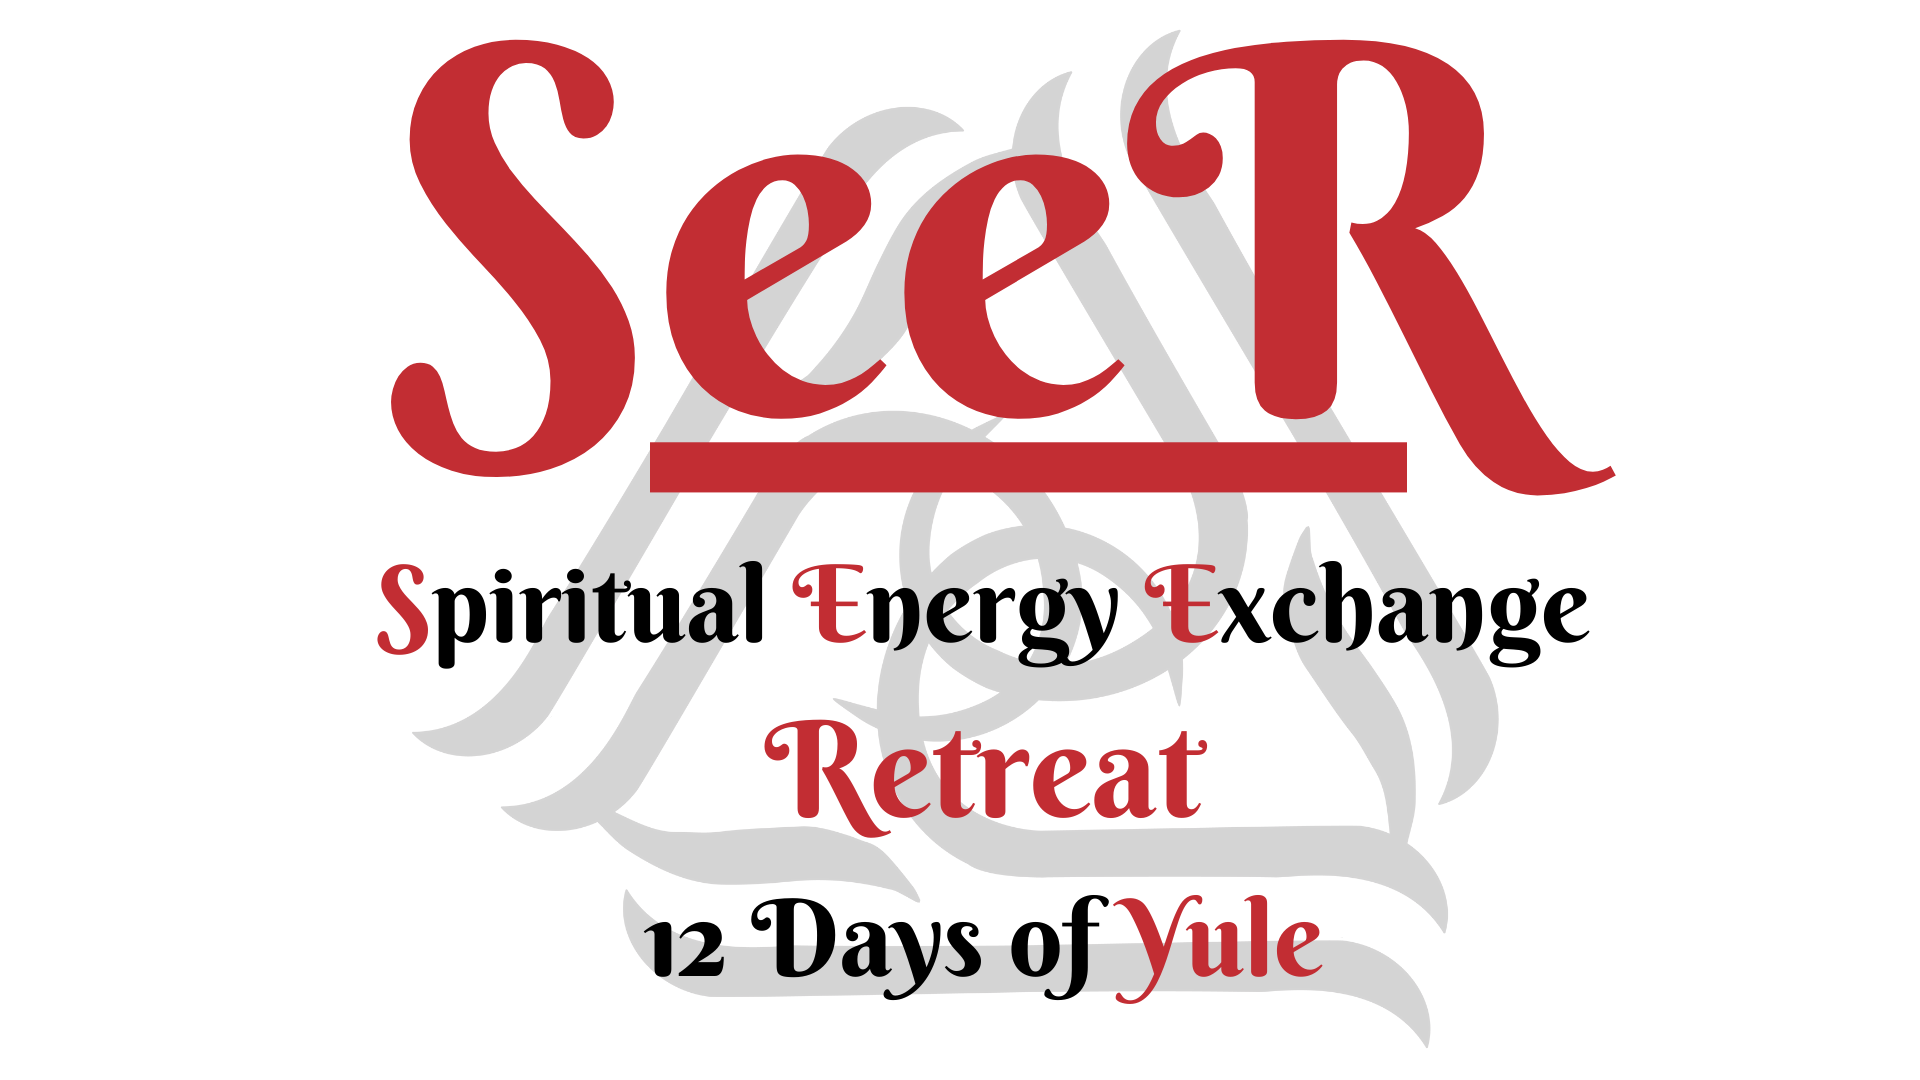 SeeR Spiritual Energy Exchange Retreat in South West Scotland